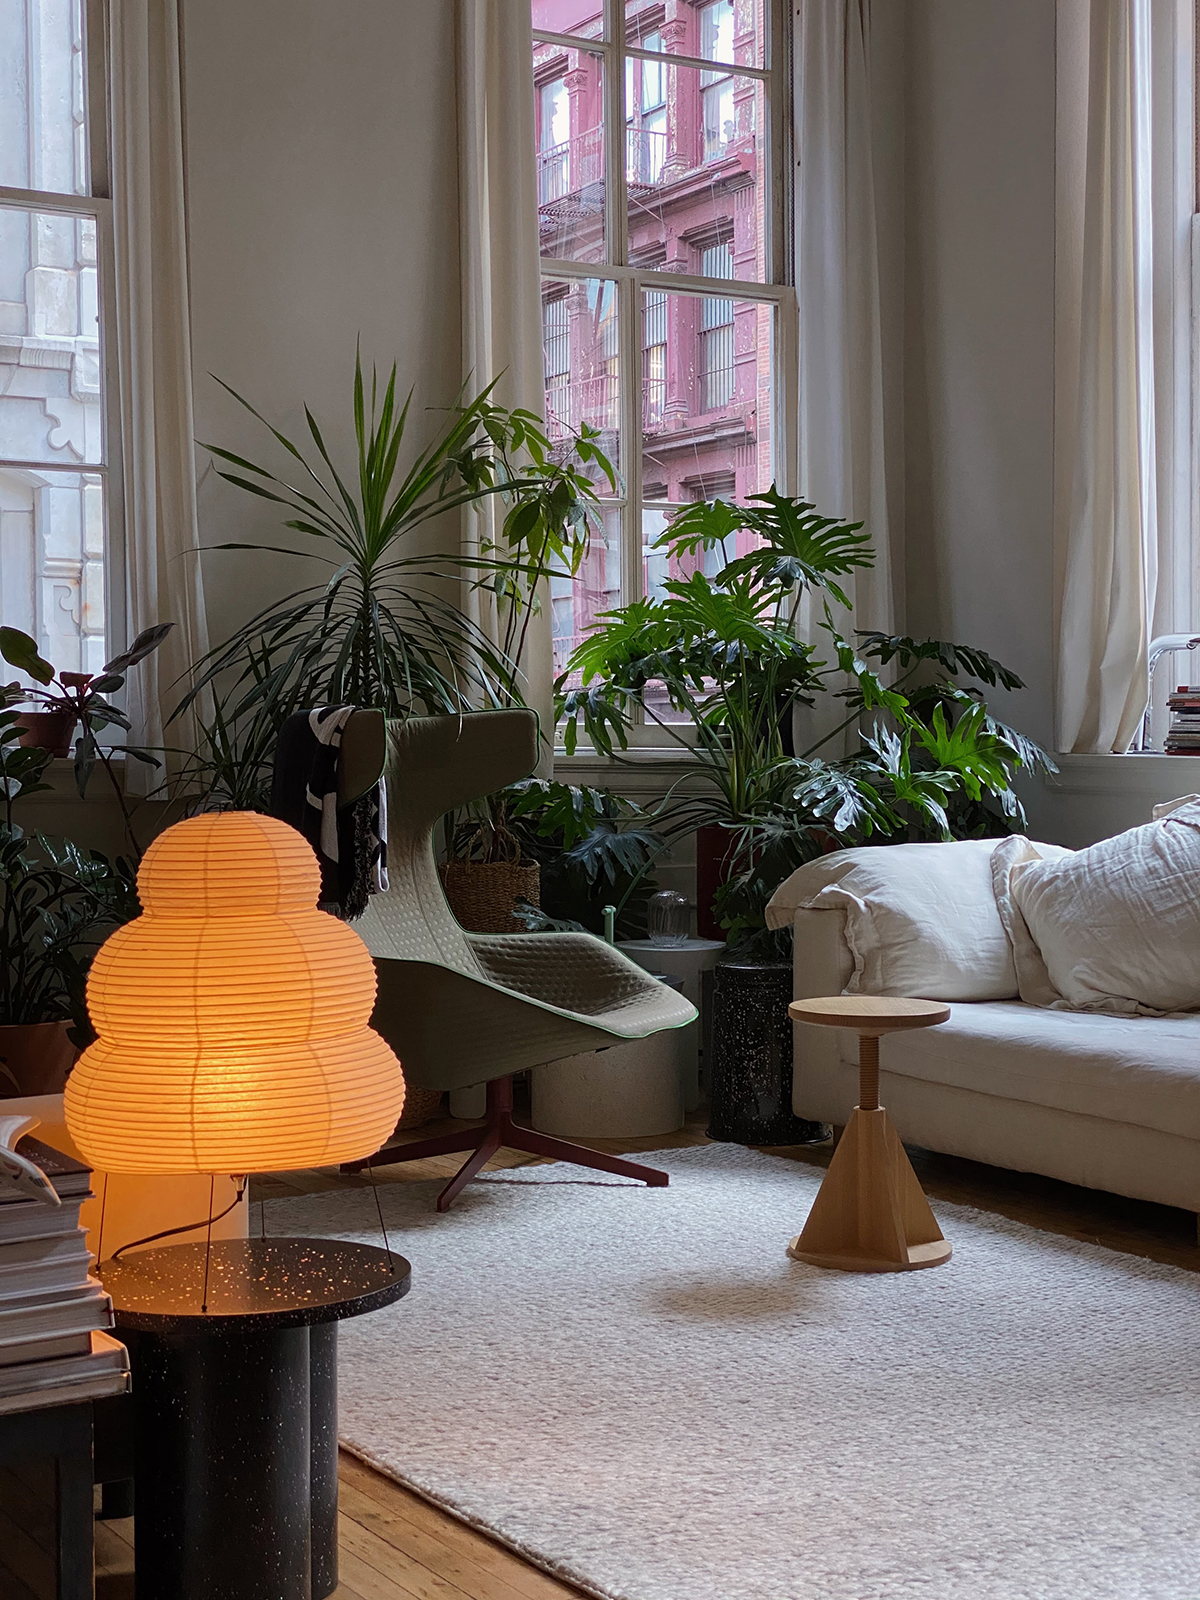 The Dunes rug in the color Melange in an inspiring New York loft, decorated with green plants and design furniture.